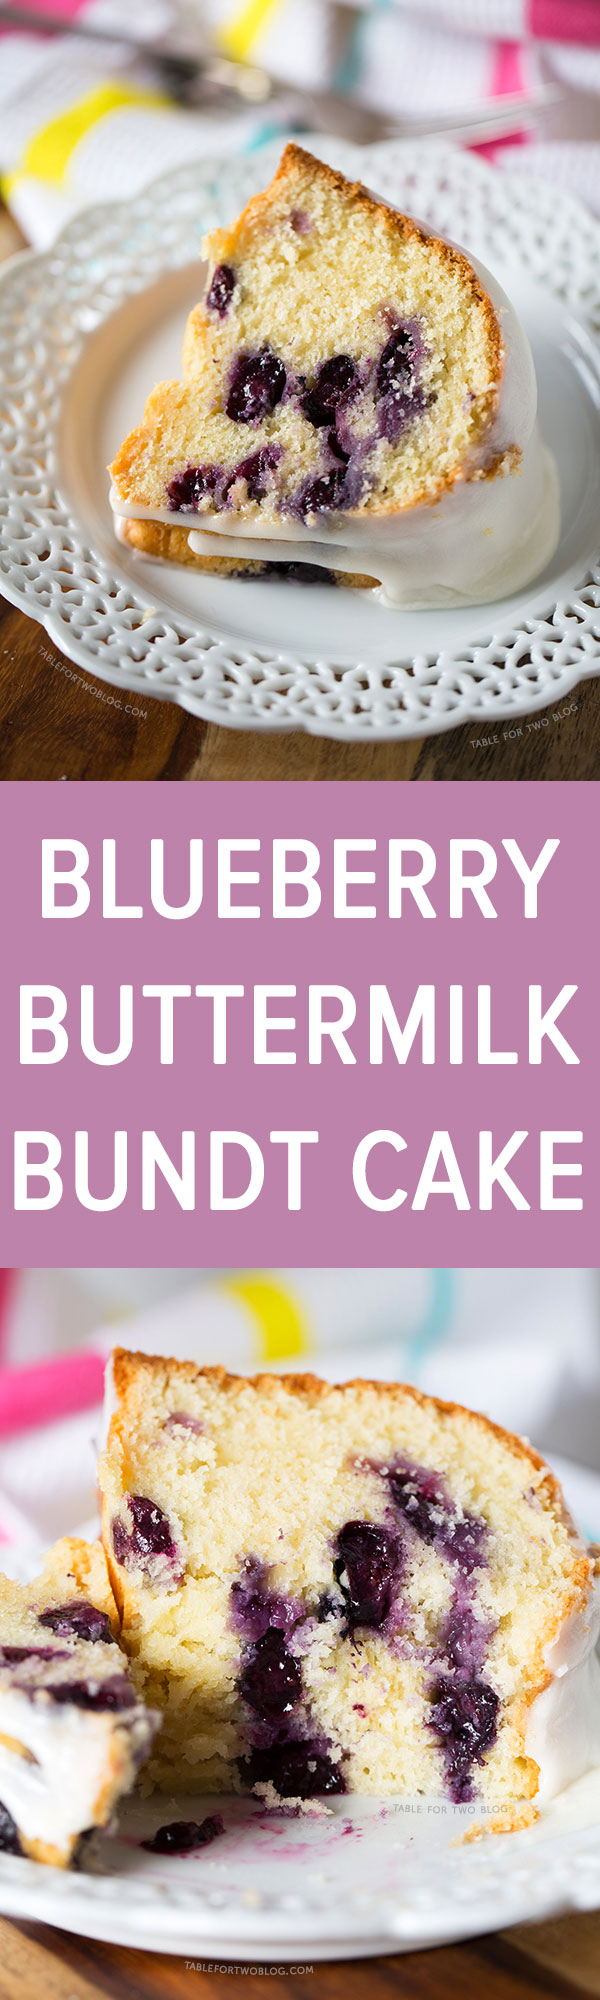 This blueberry buttermilk bundt cake is filled with fresh blueberries and topped with a thick sugar glaze. The cake is super tender and moist, and it will stay that way for several days!